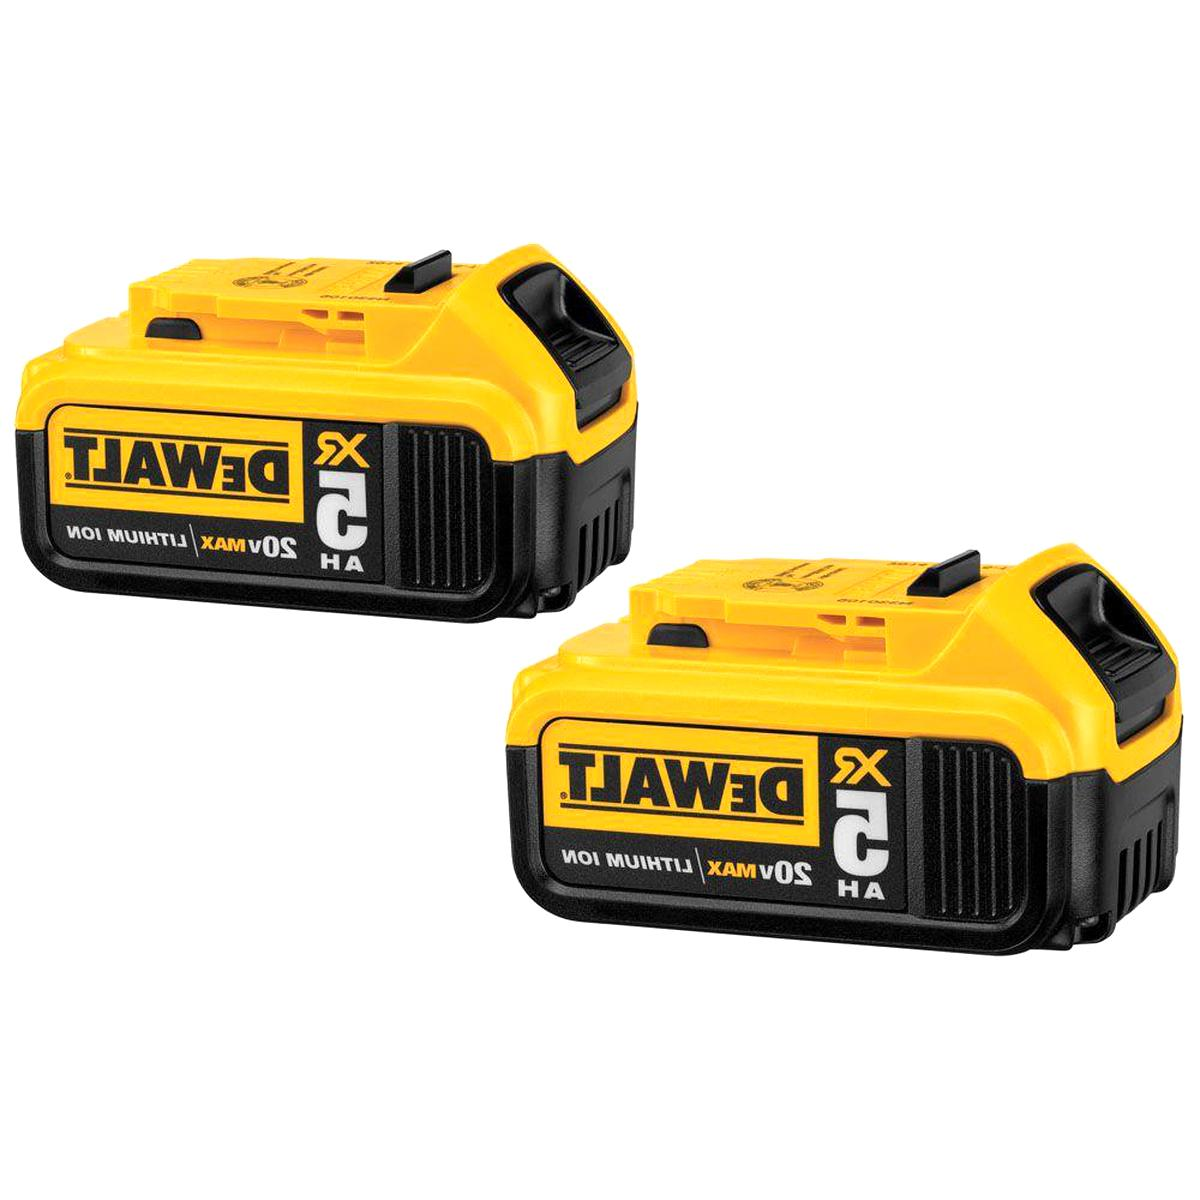 dewalt 20v max battery for sale